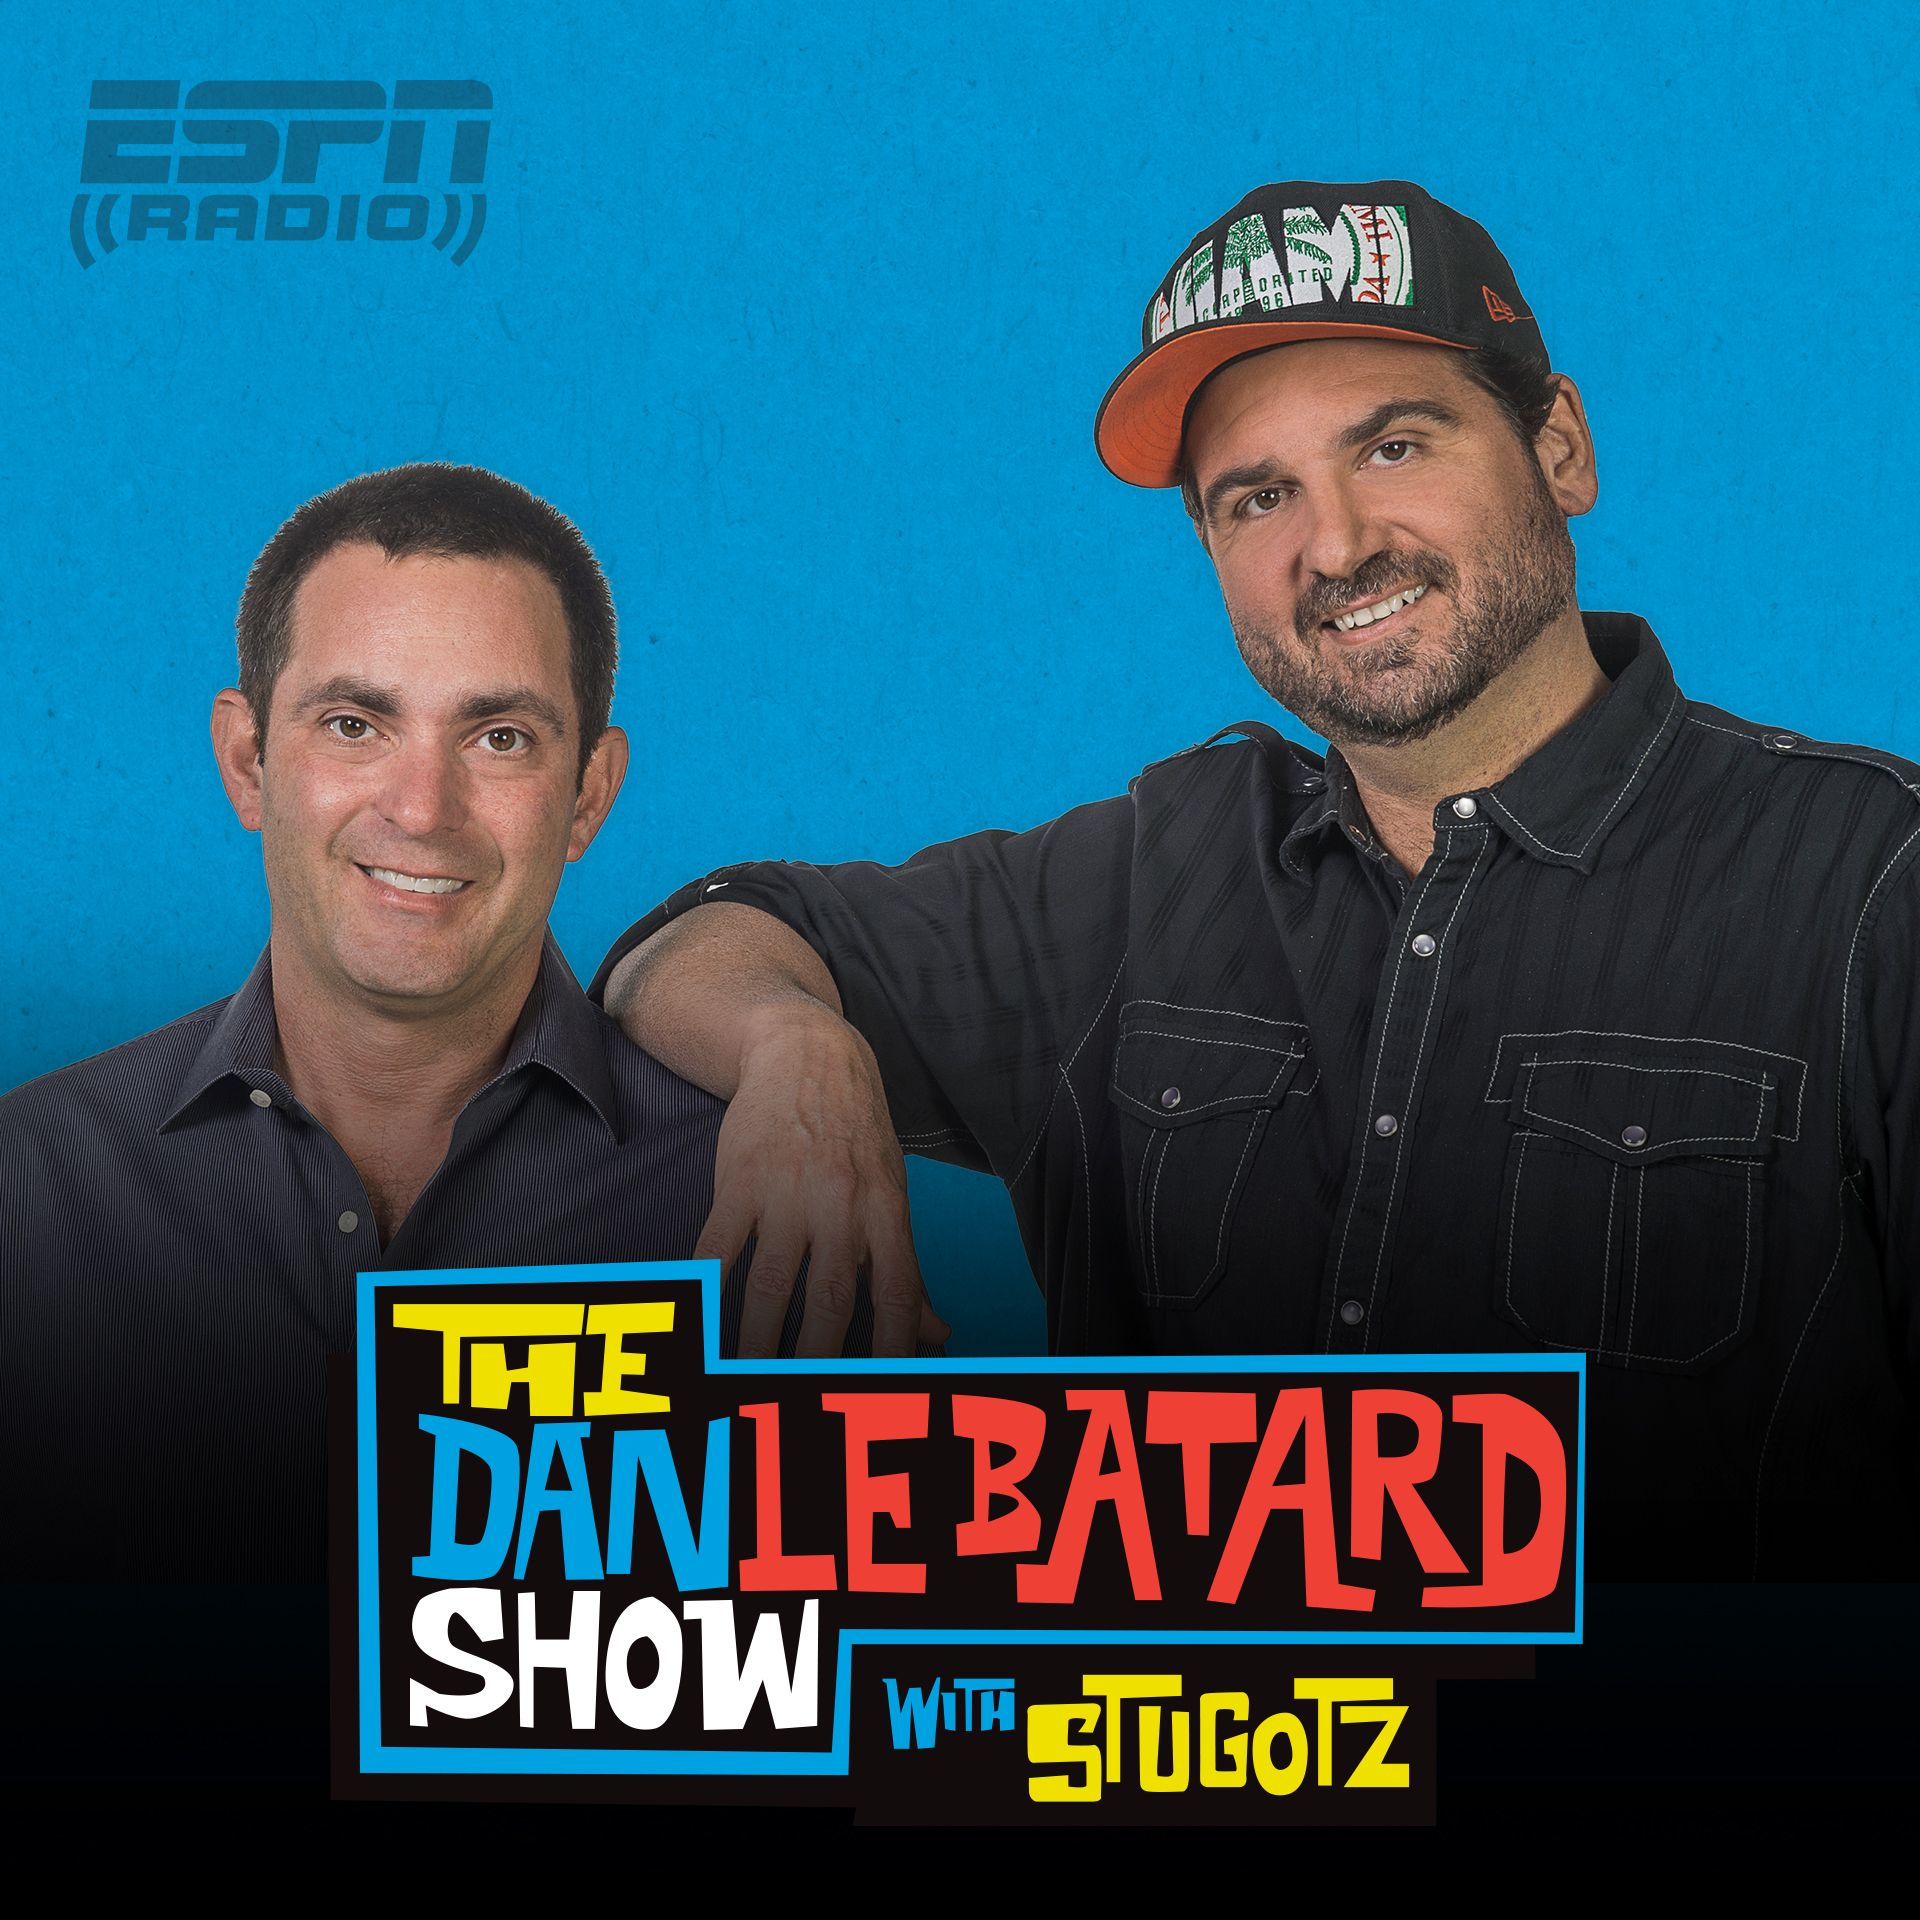 The Dan LeBatard Show with Stugotz